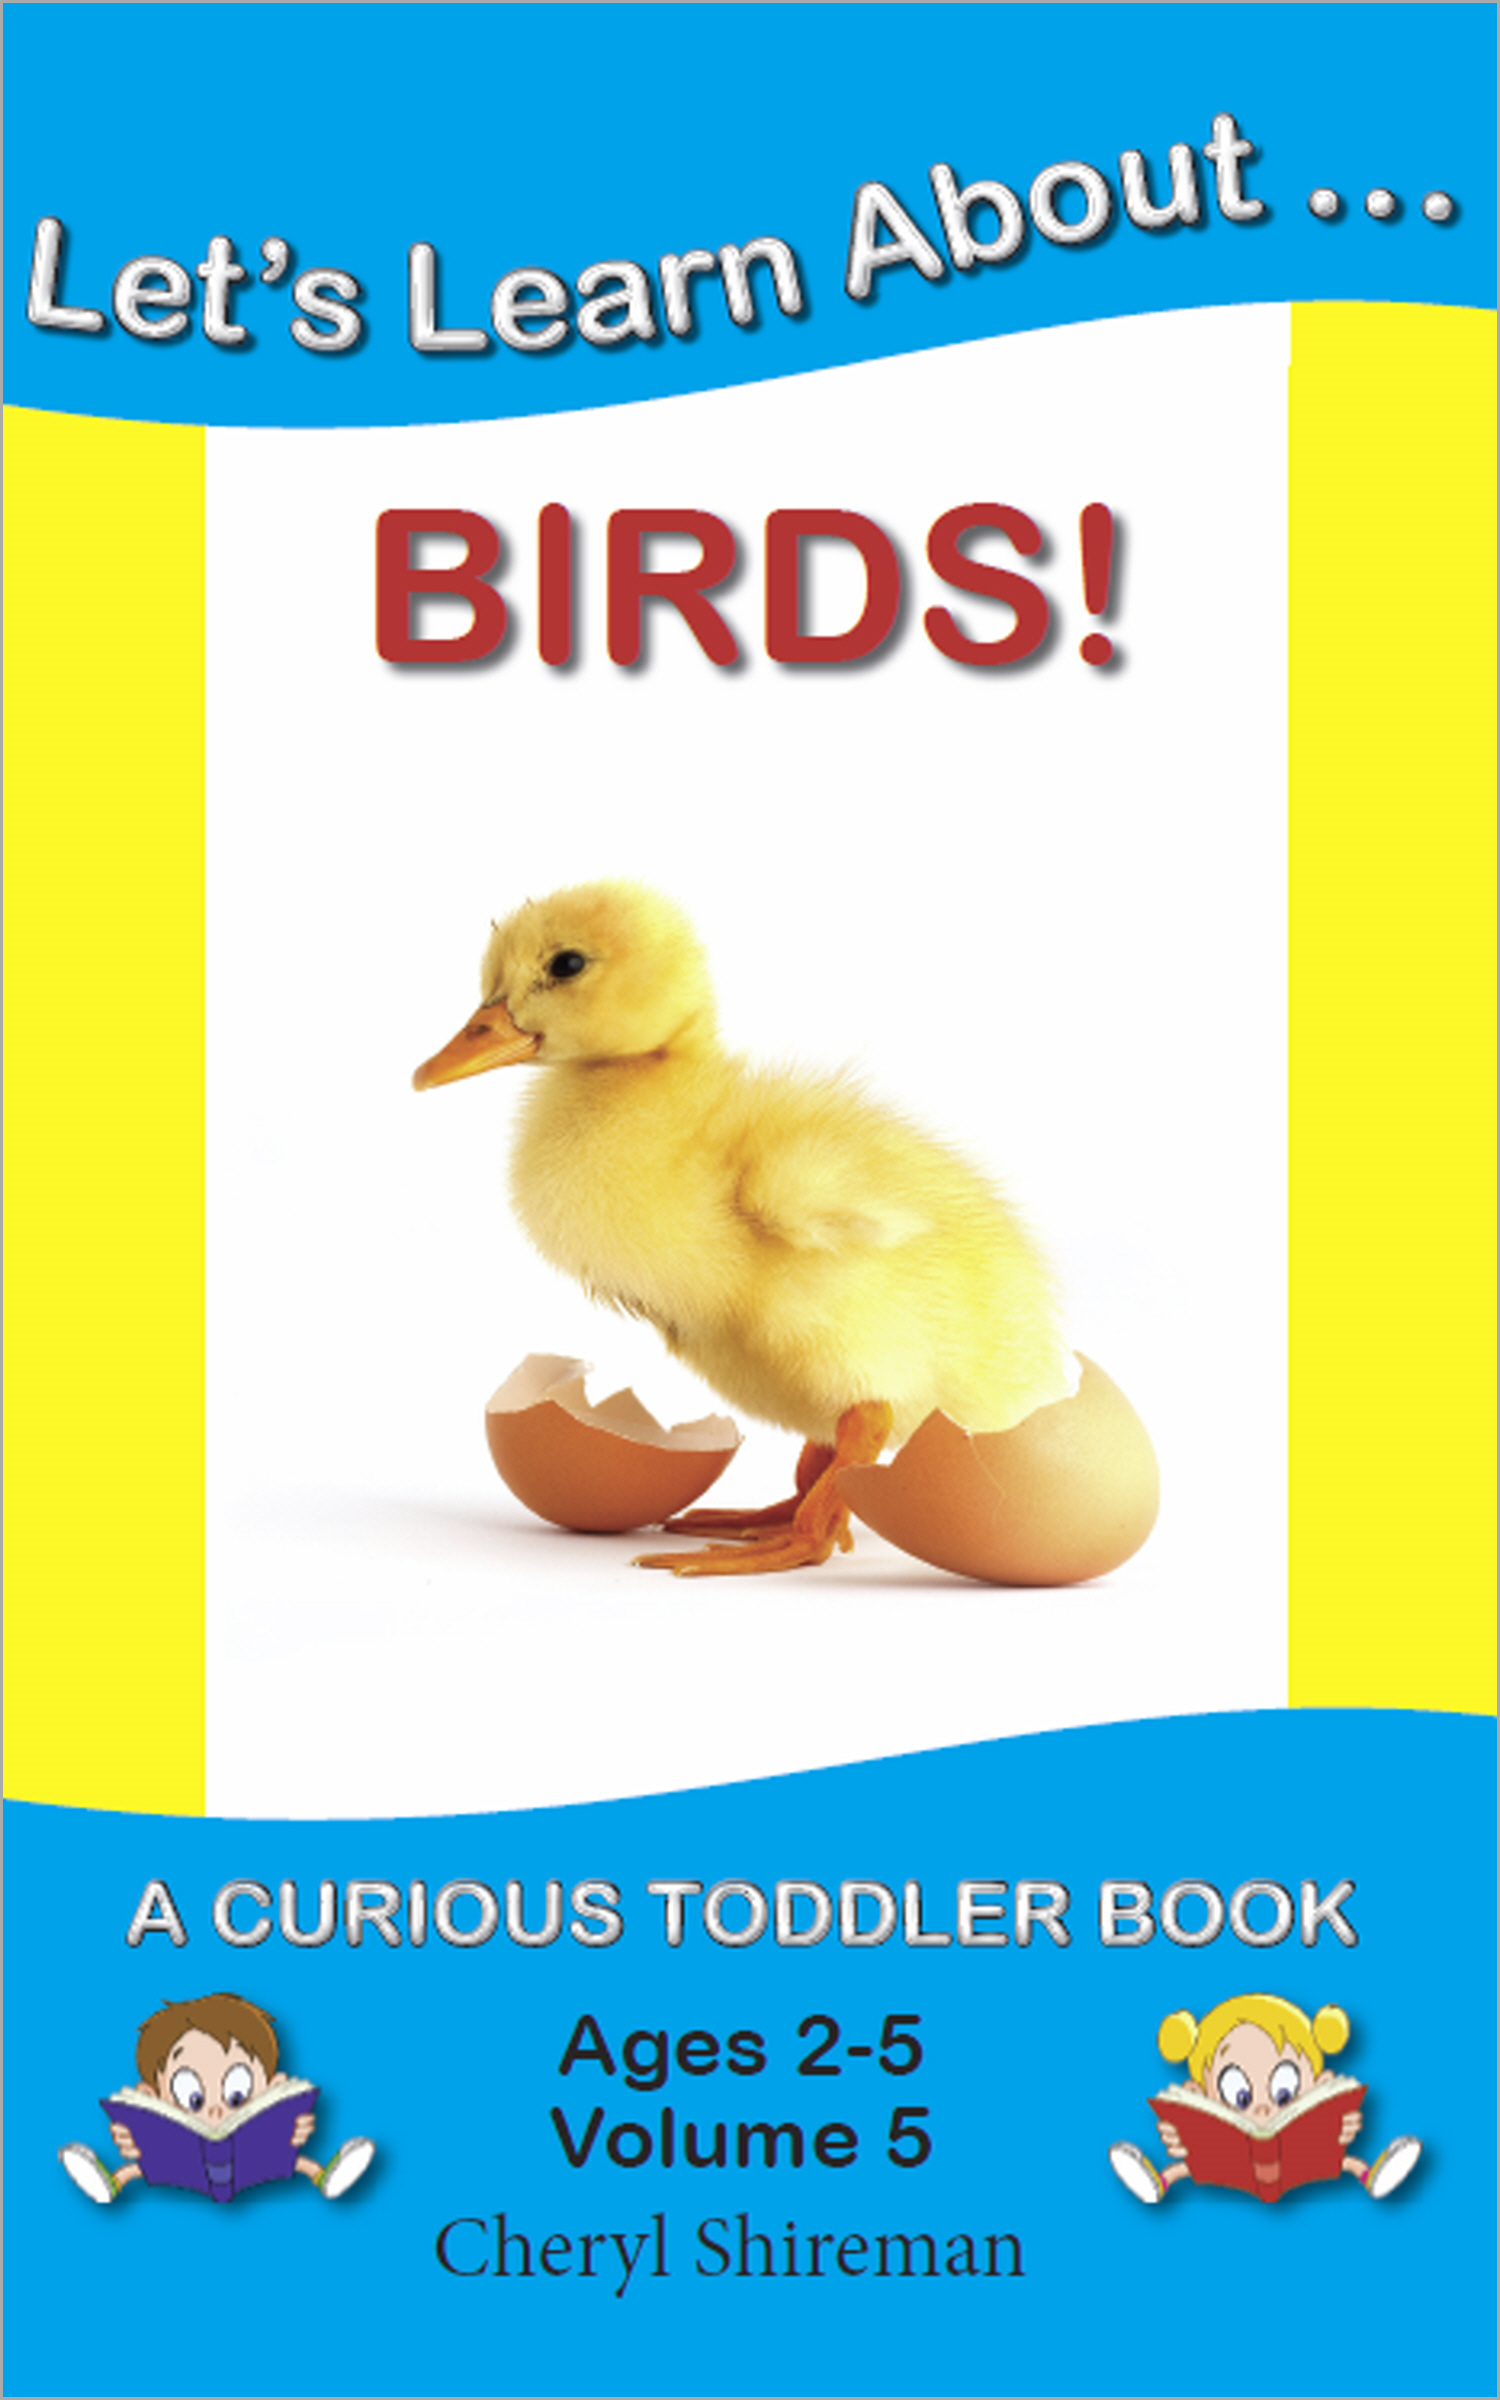 Let's Learn About...Birds!